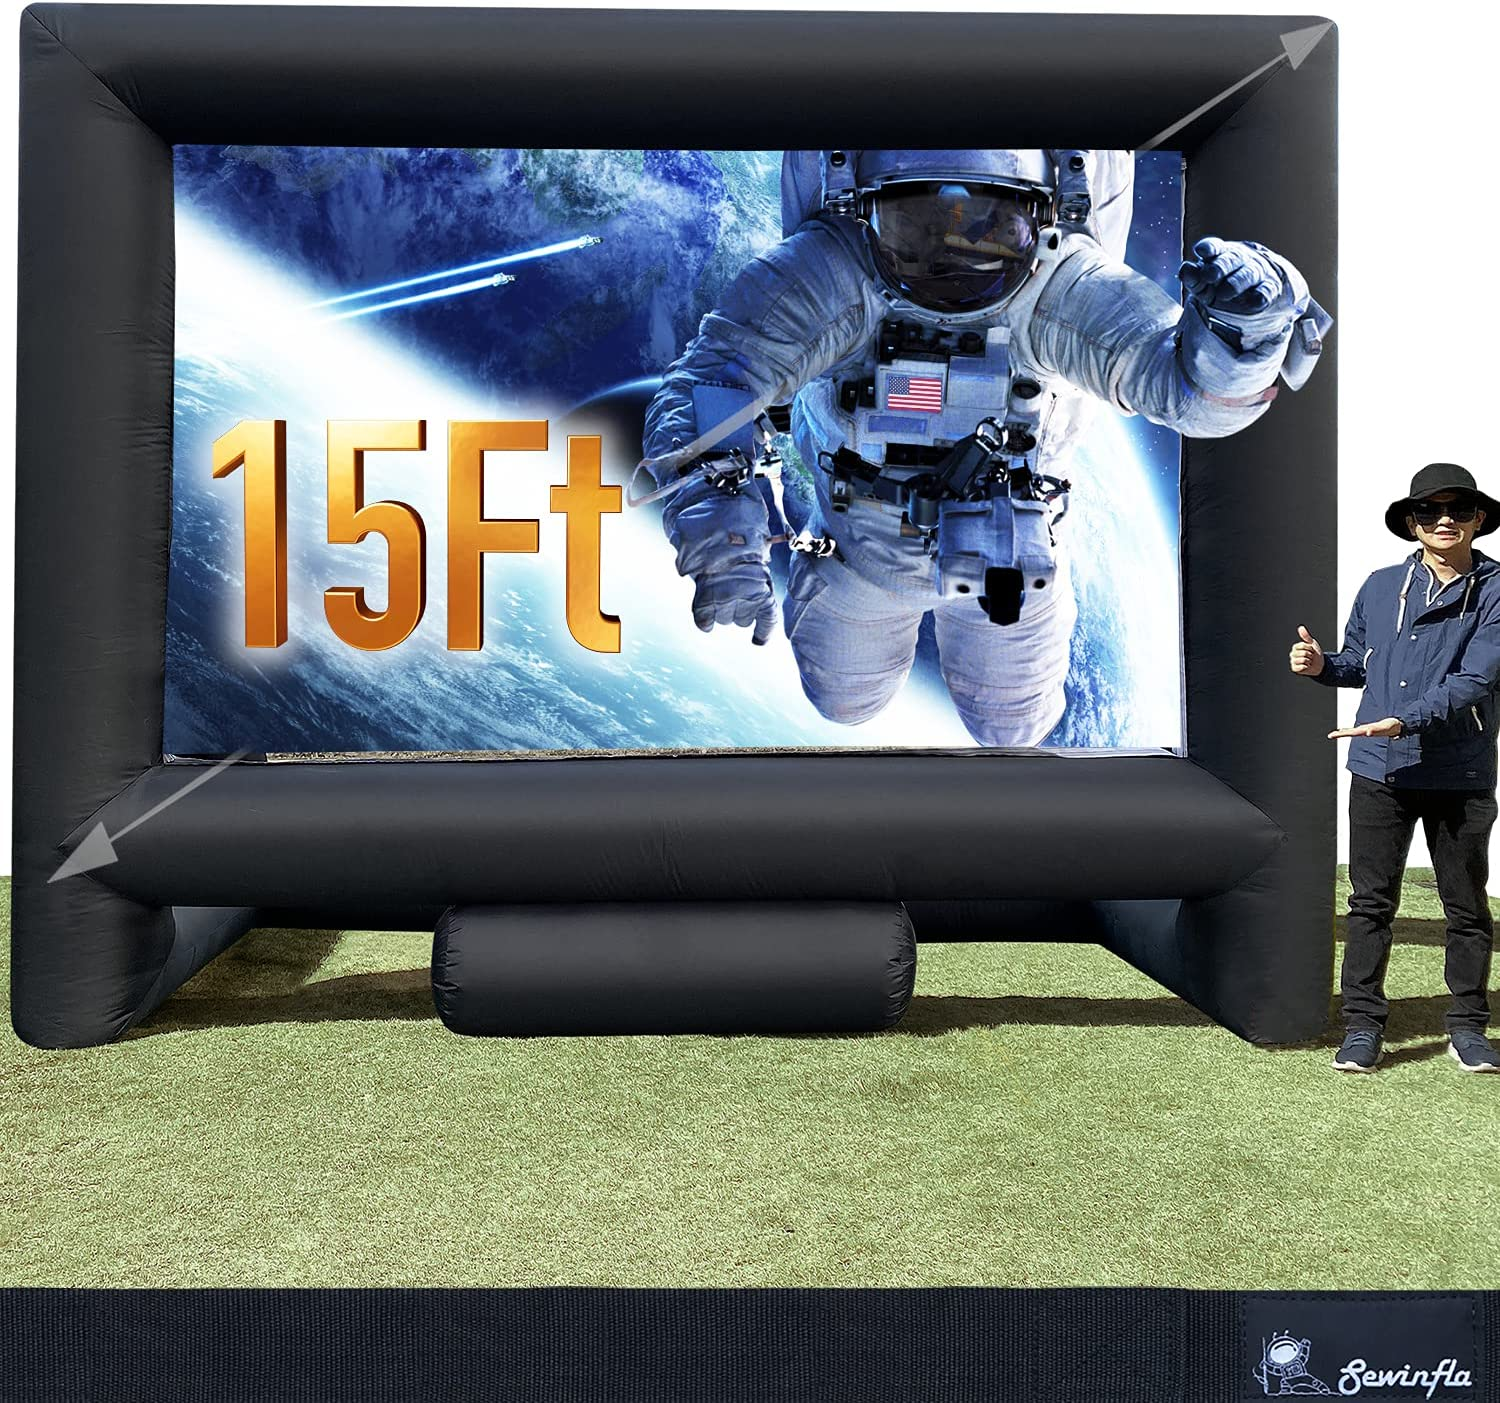 Sewinfla 15Ft Outdoor OFFicial and Indoor Movie Inflatable Scre New products, world's highest quality popular! Projector